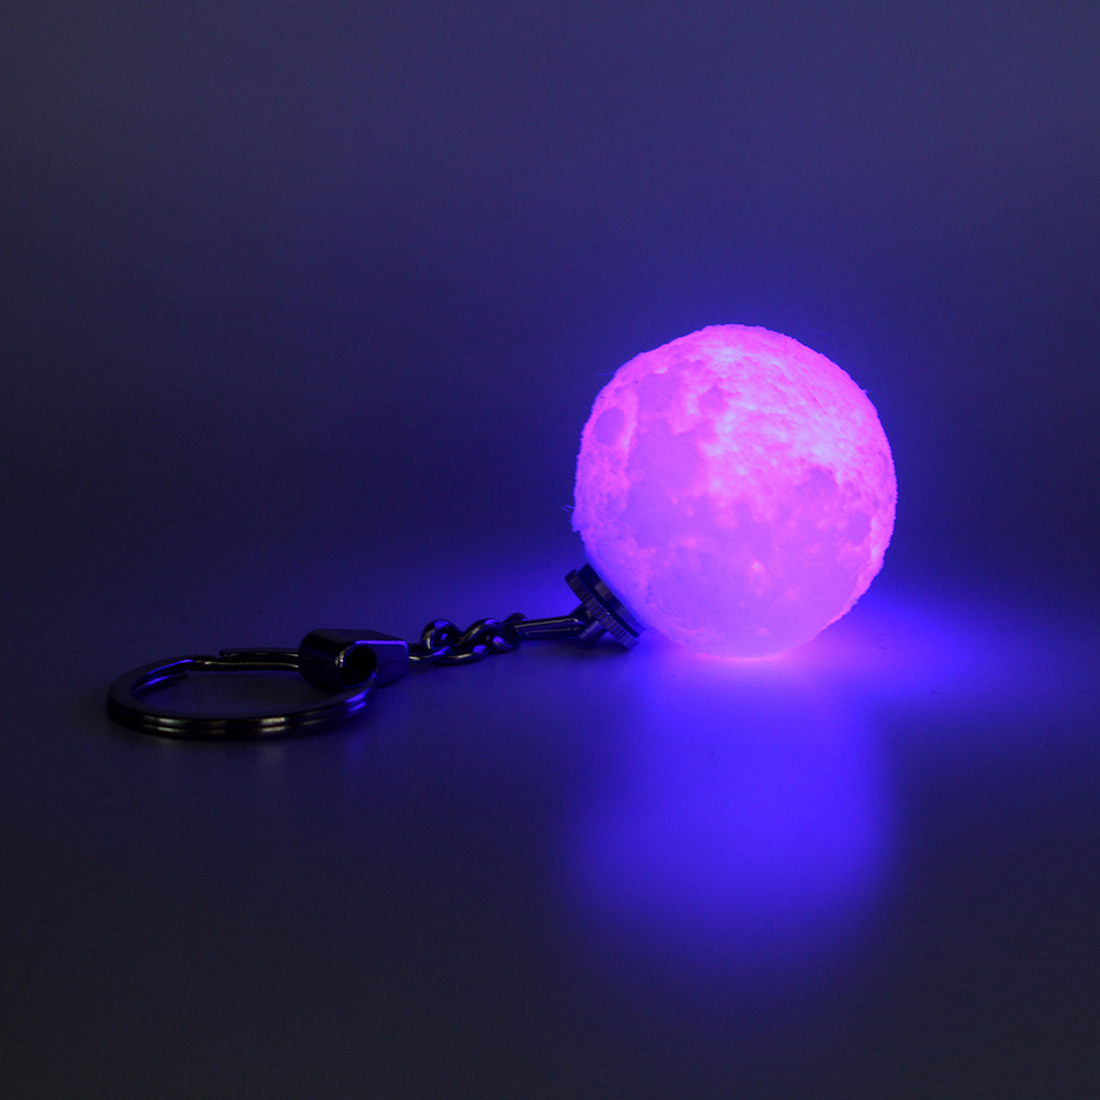 Keychain Colorfuls Change Football Led Light 3D Print Moon Lamp Glow Portable Hanging Night Light Bedroom Decor Creative Gifts